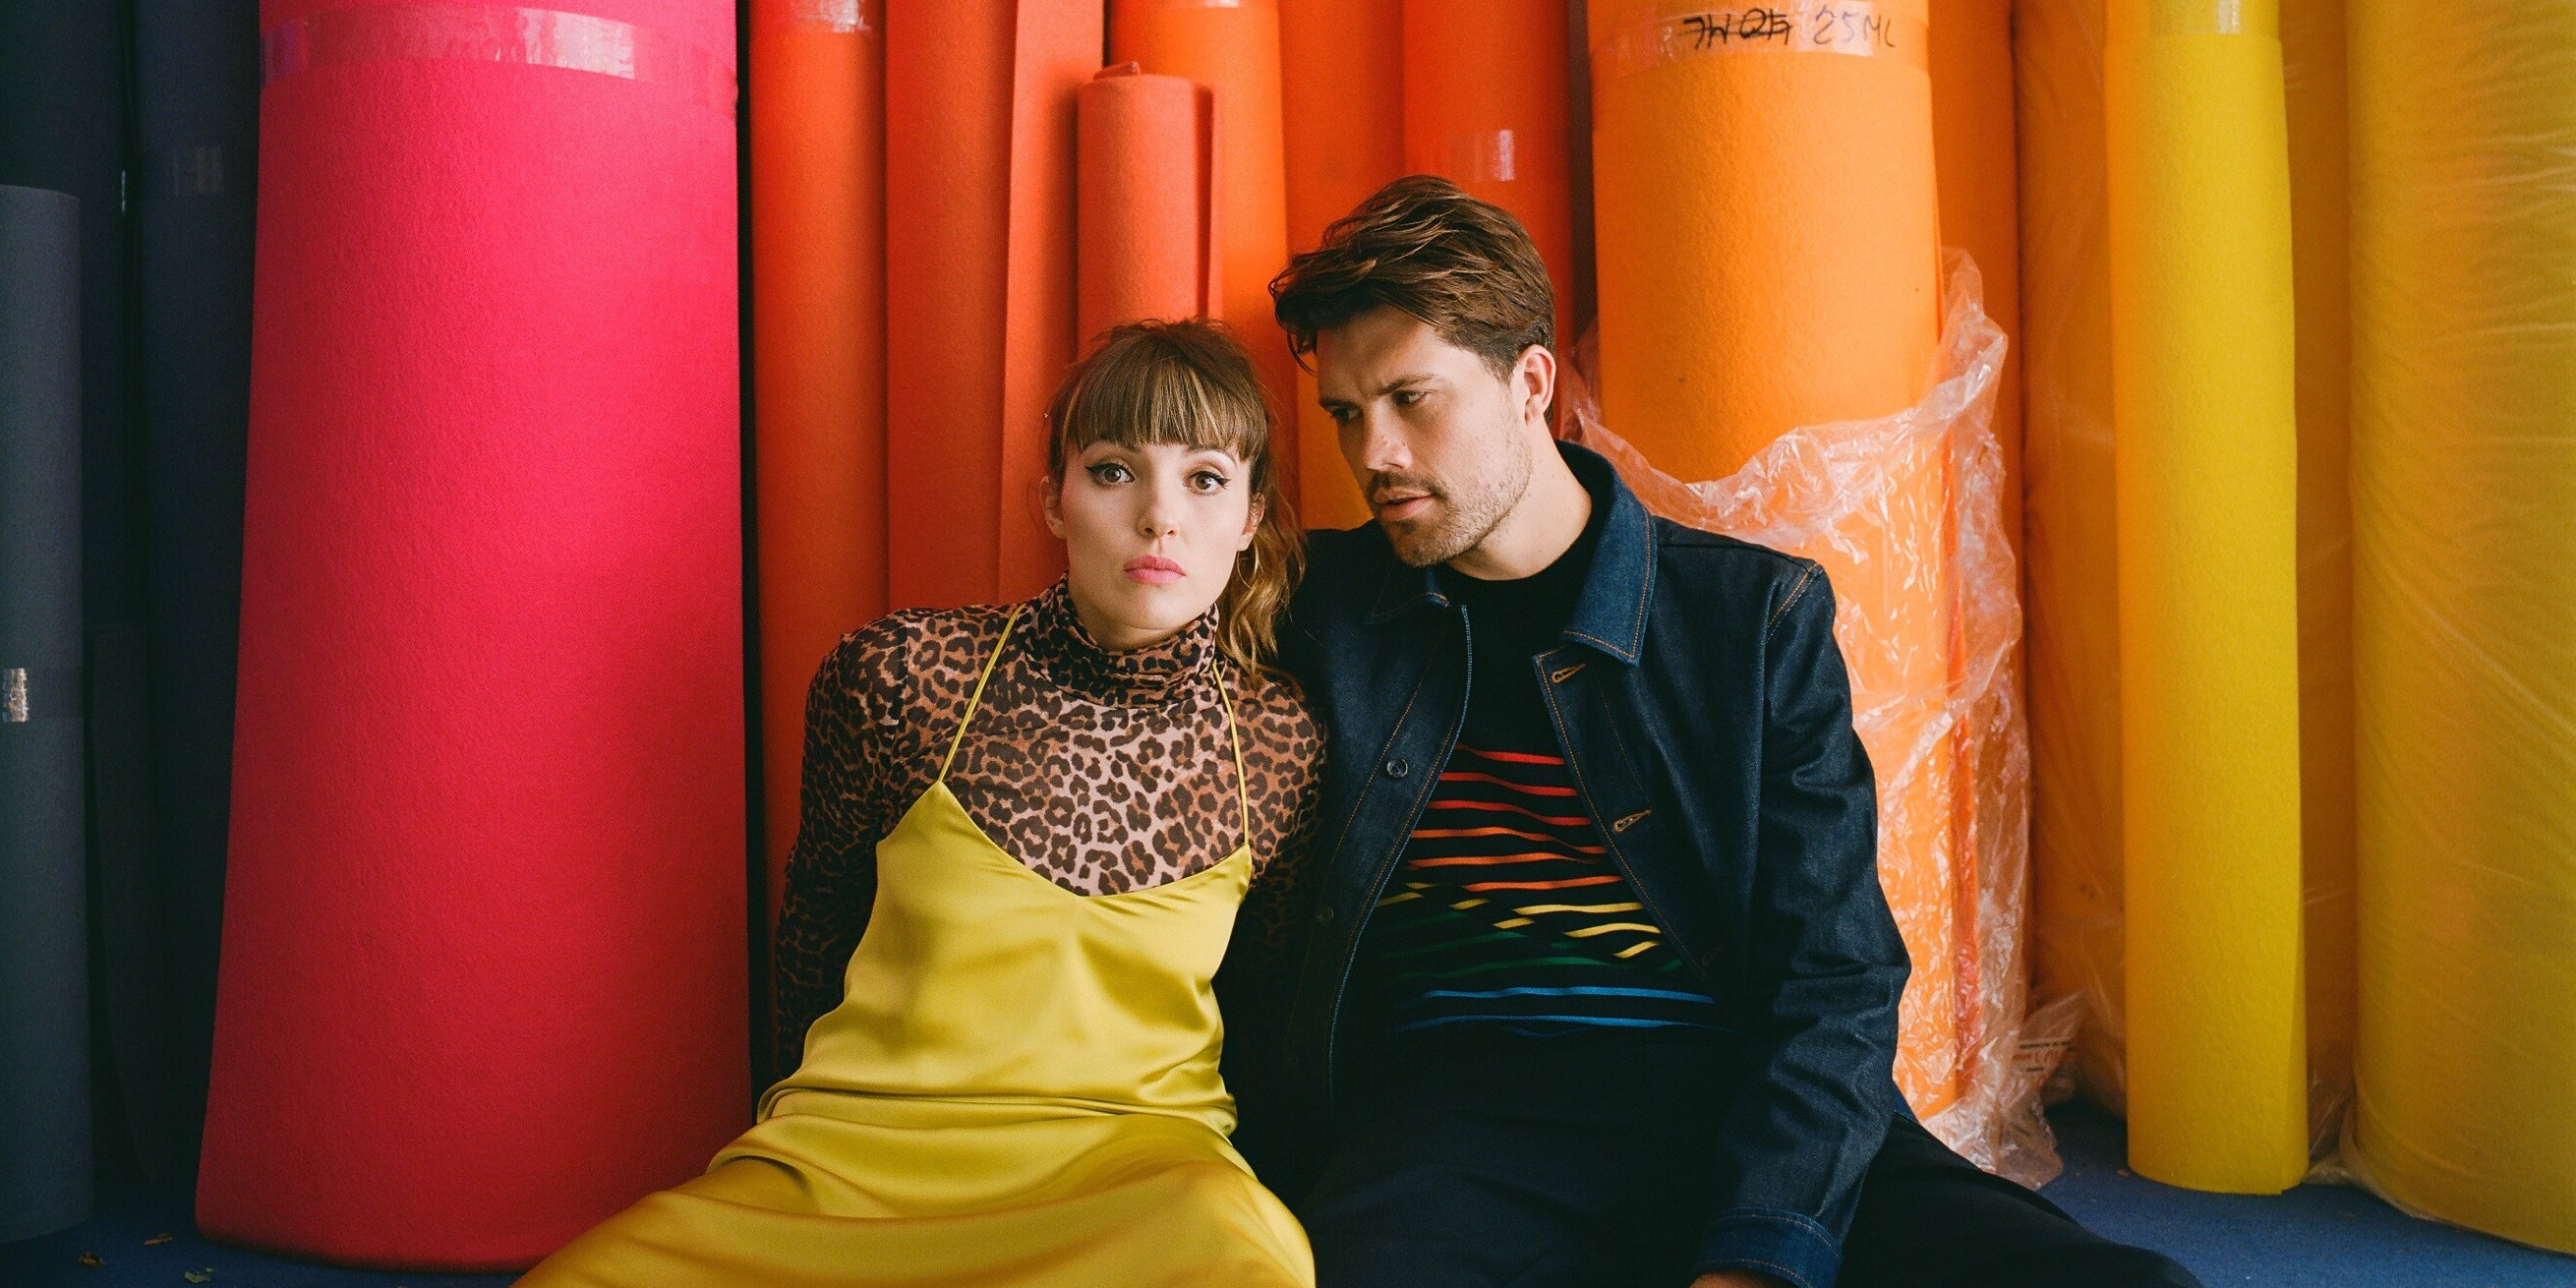 """""""Making music is the best bit in your job"""": An interview with Oh Wonder"""